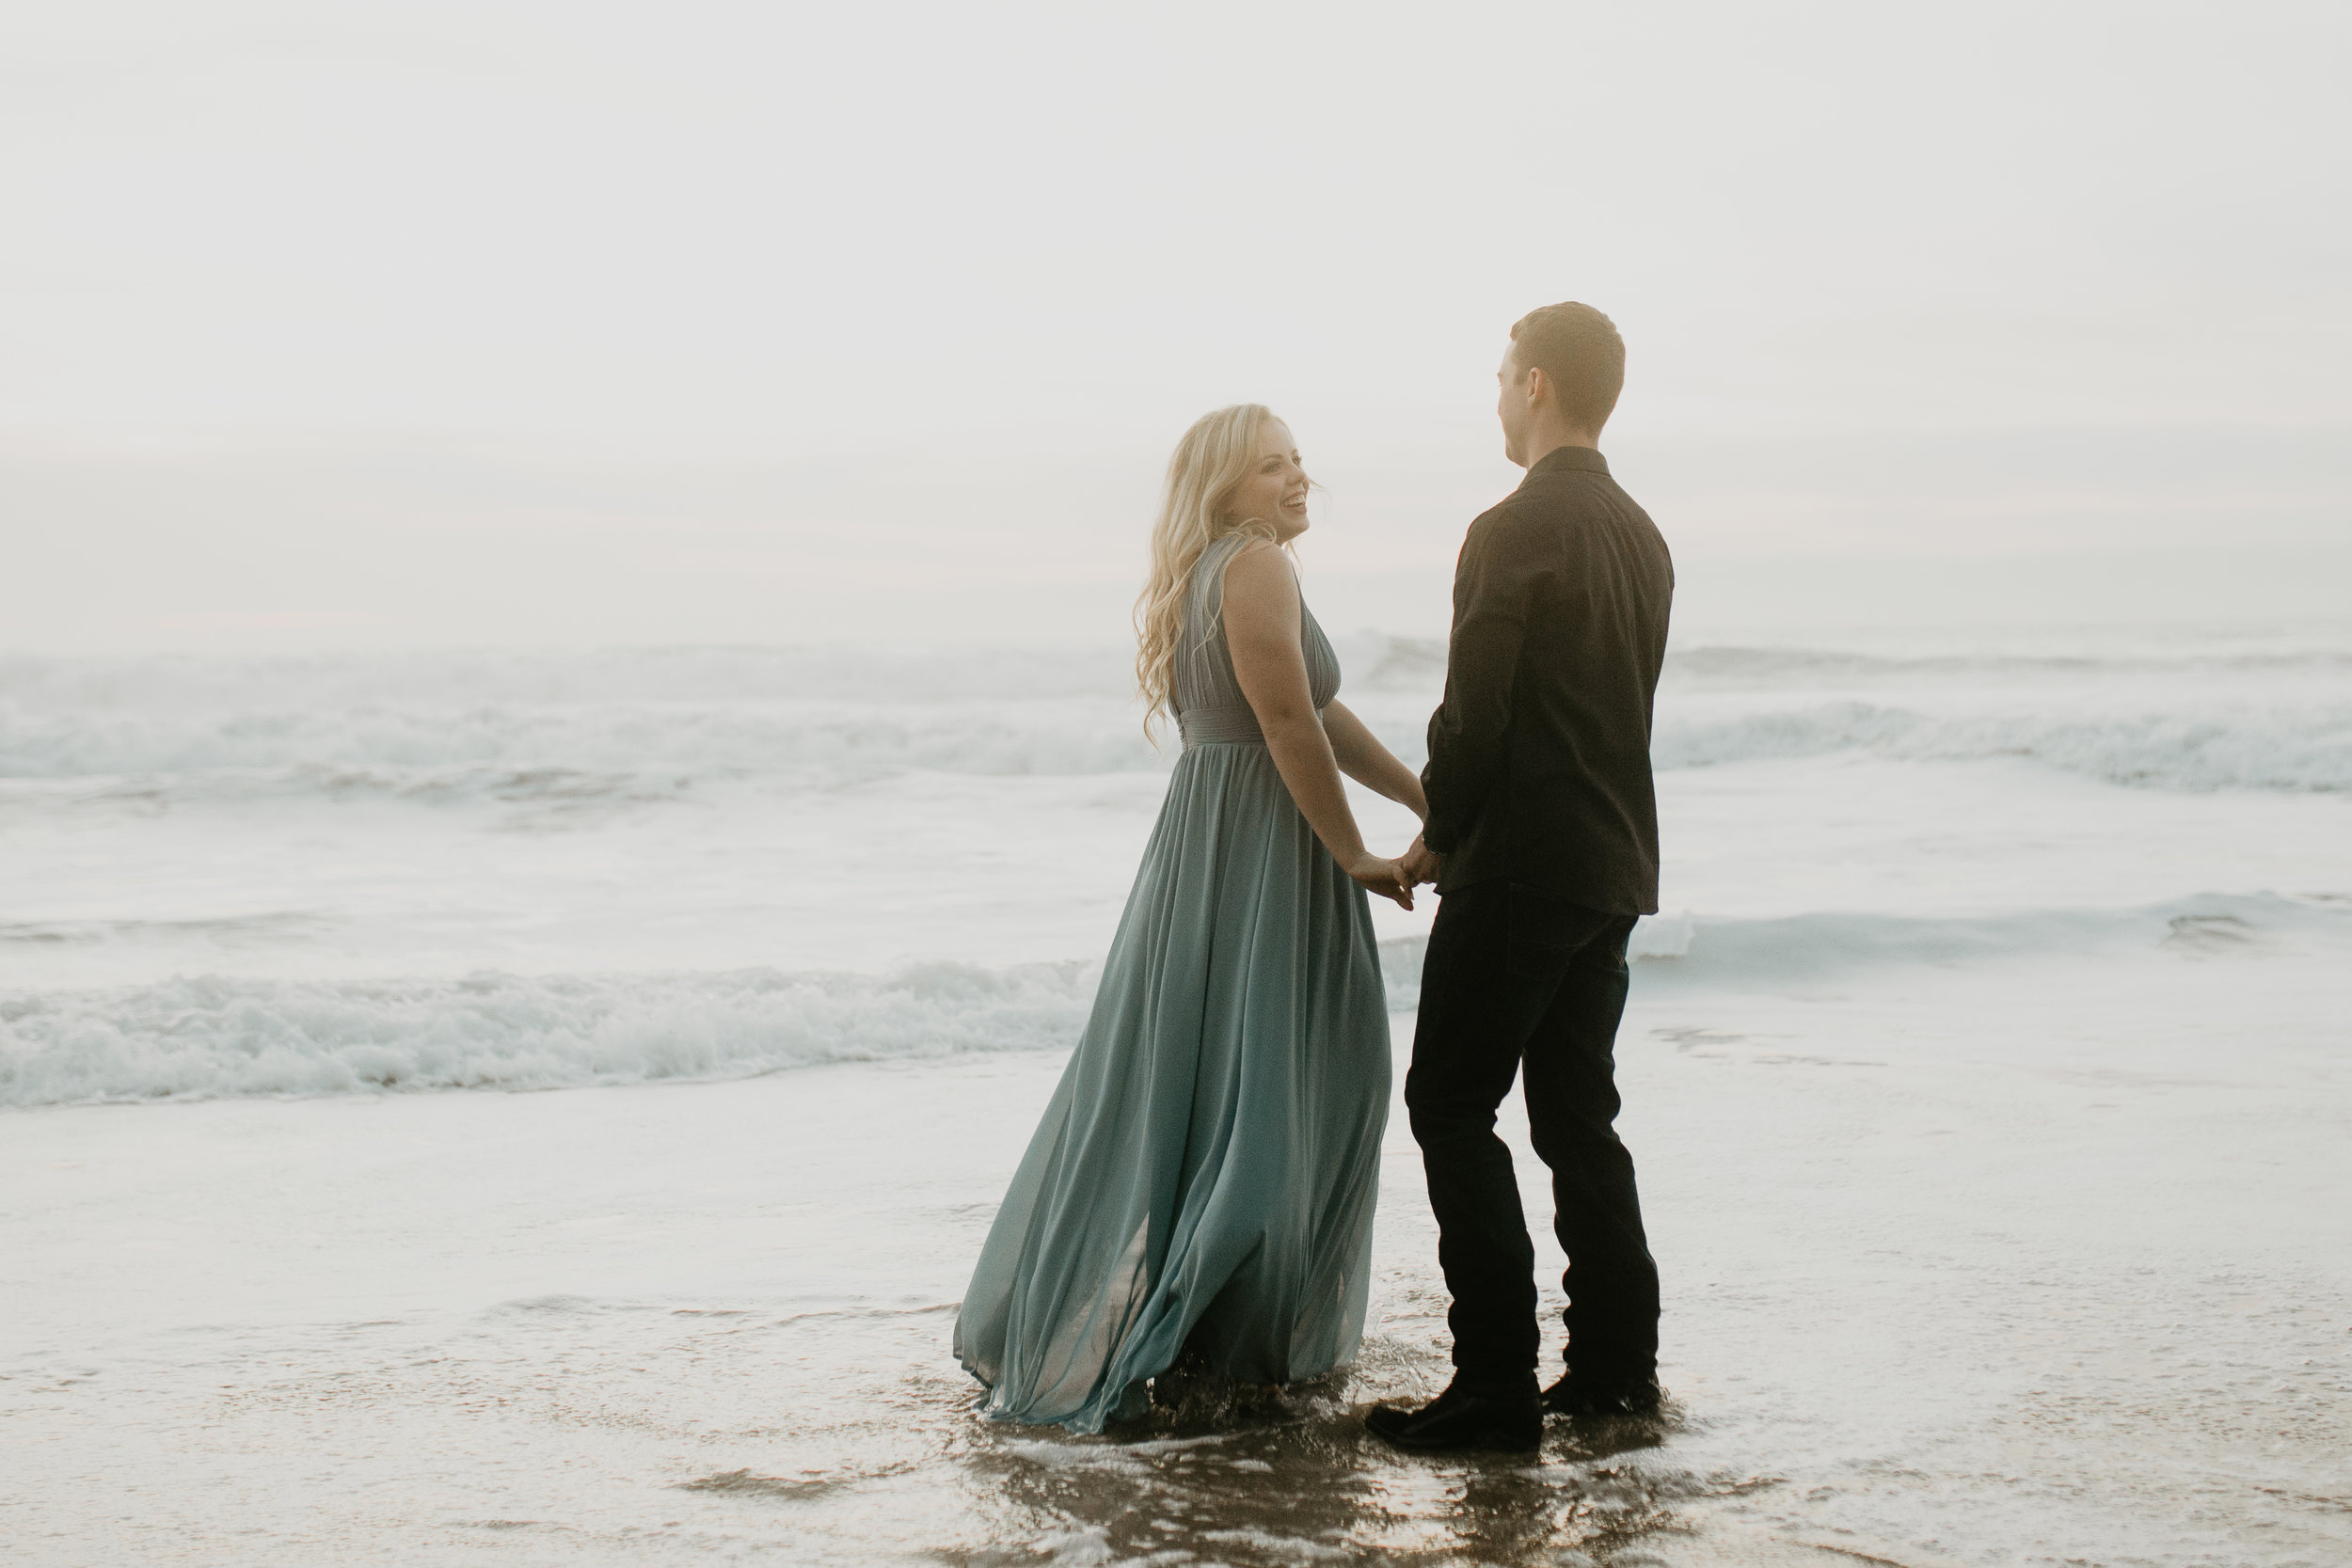 Nicole-Daacke-Photography-big-sur-garrapatta-state-park-adventurous-engagement-session-bixy-bridge-elopement-big-sur-wedding-photographer-monterey-elopement-photographer-california-golden-sunset-coast-photos-60.jpg